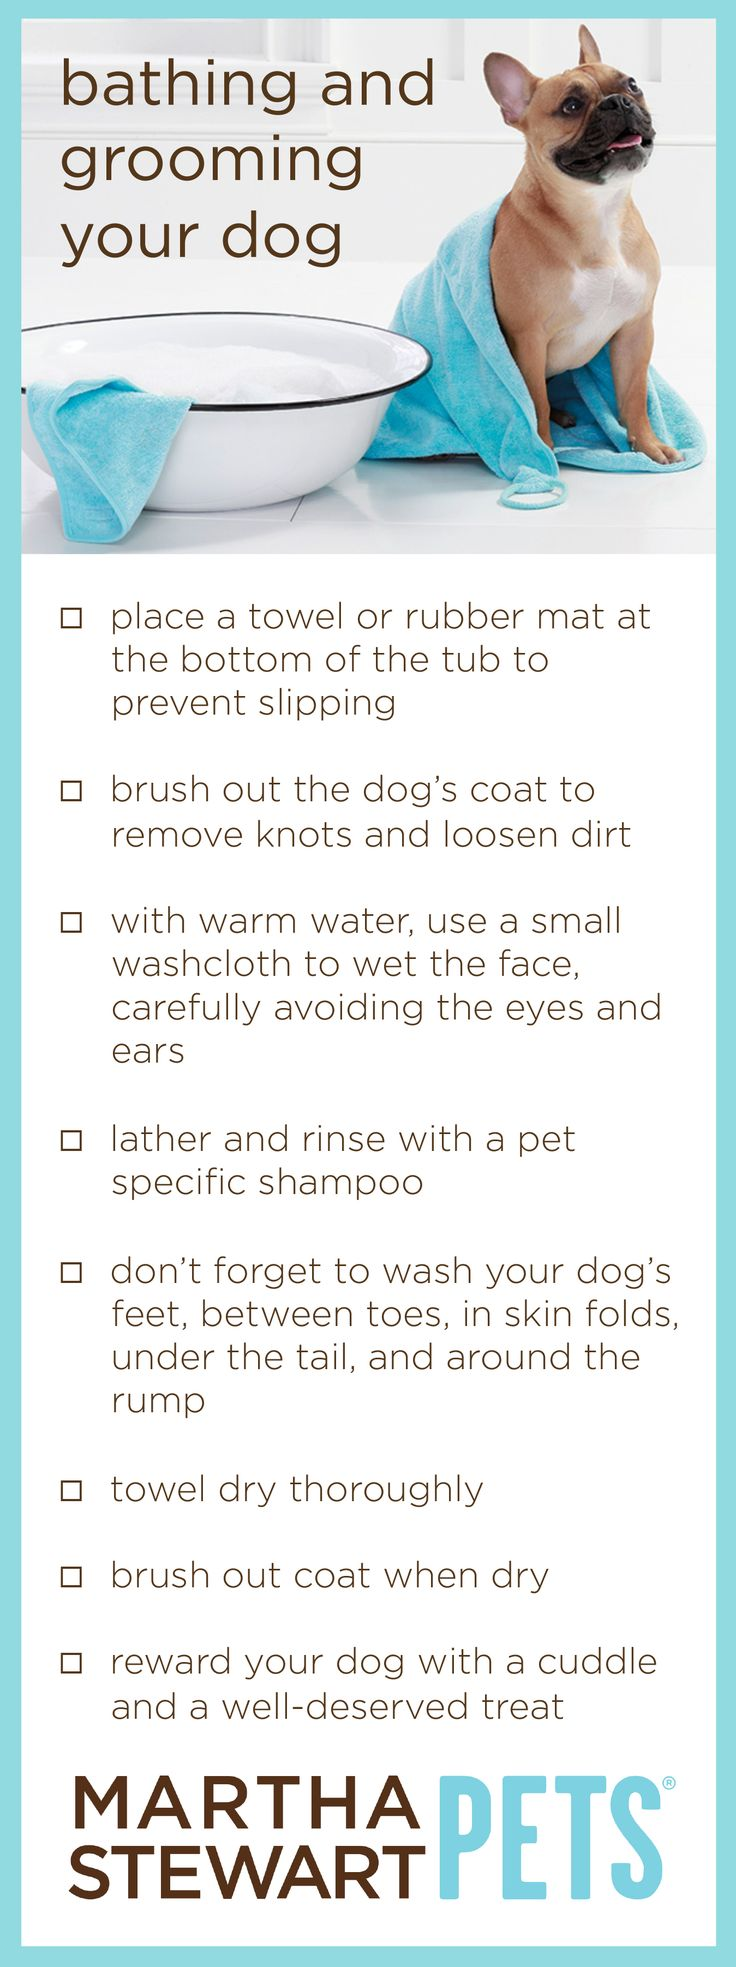 #MarthaStewartPets tips on #Bathing and #Grooming your #dog. Check out our selection of grooming tools available at #PetSmart! #petcare #pettips